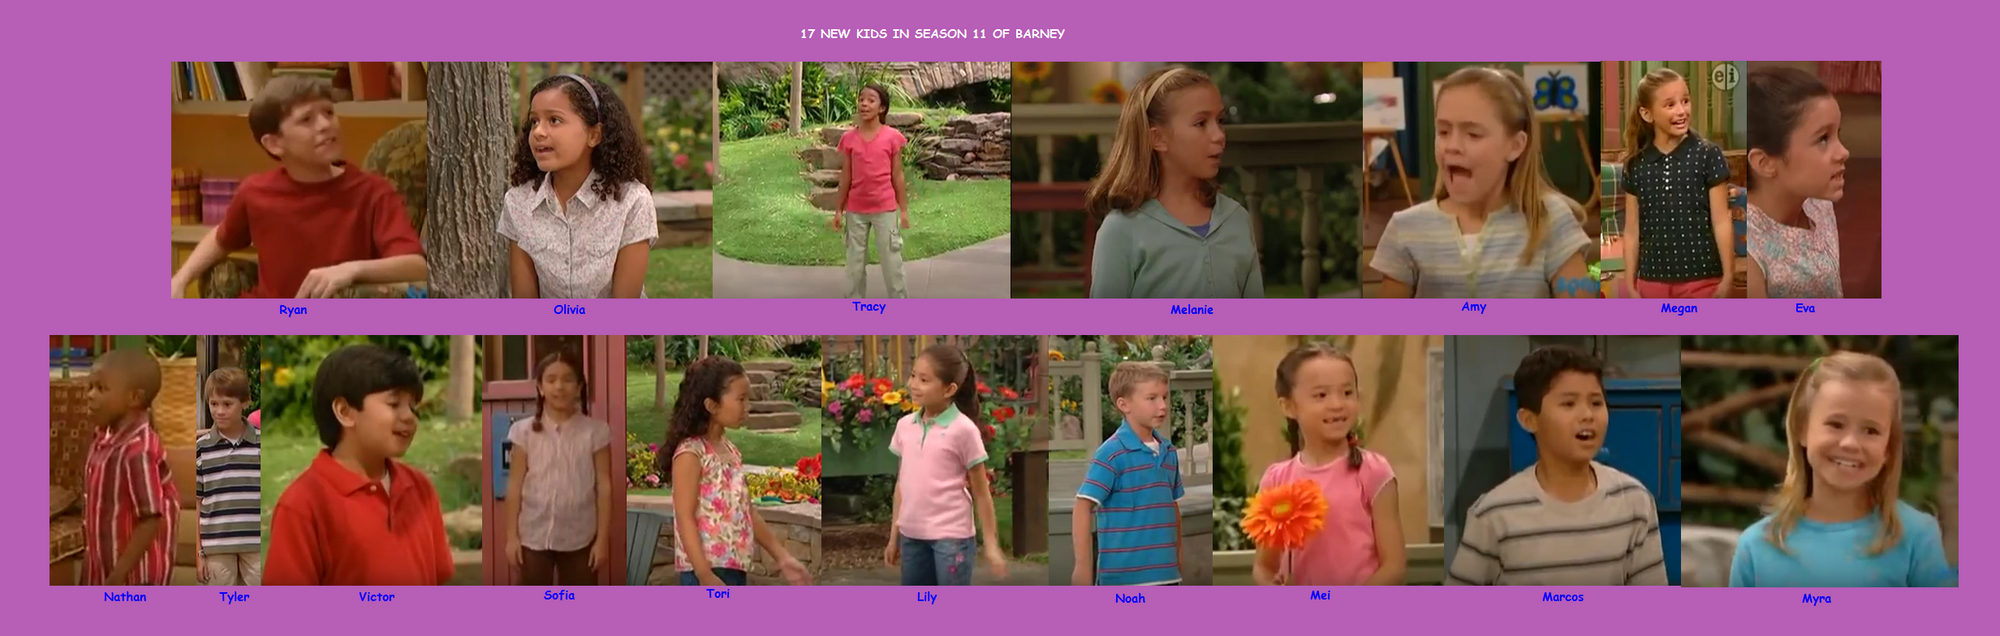 image 17 new kids in season 11 of barney png custom time